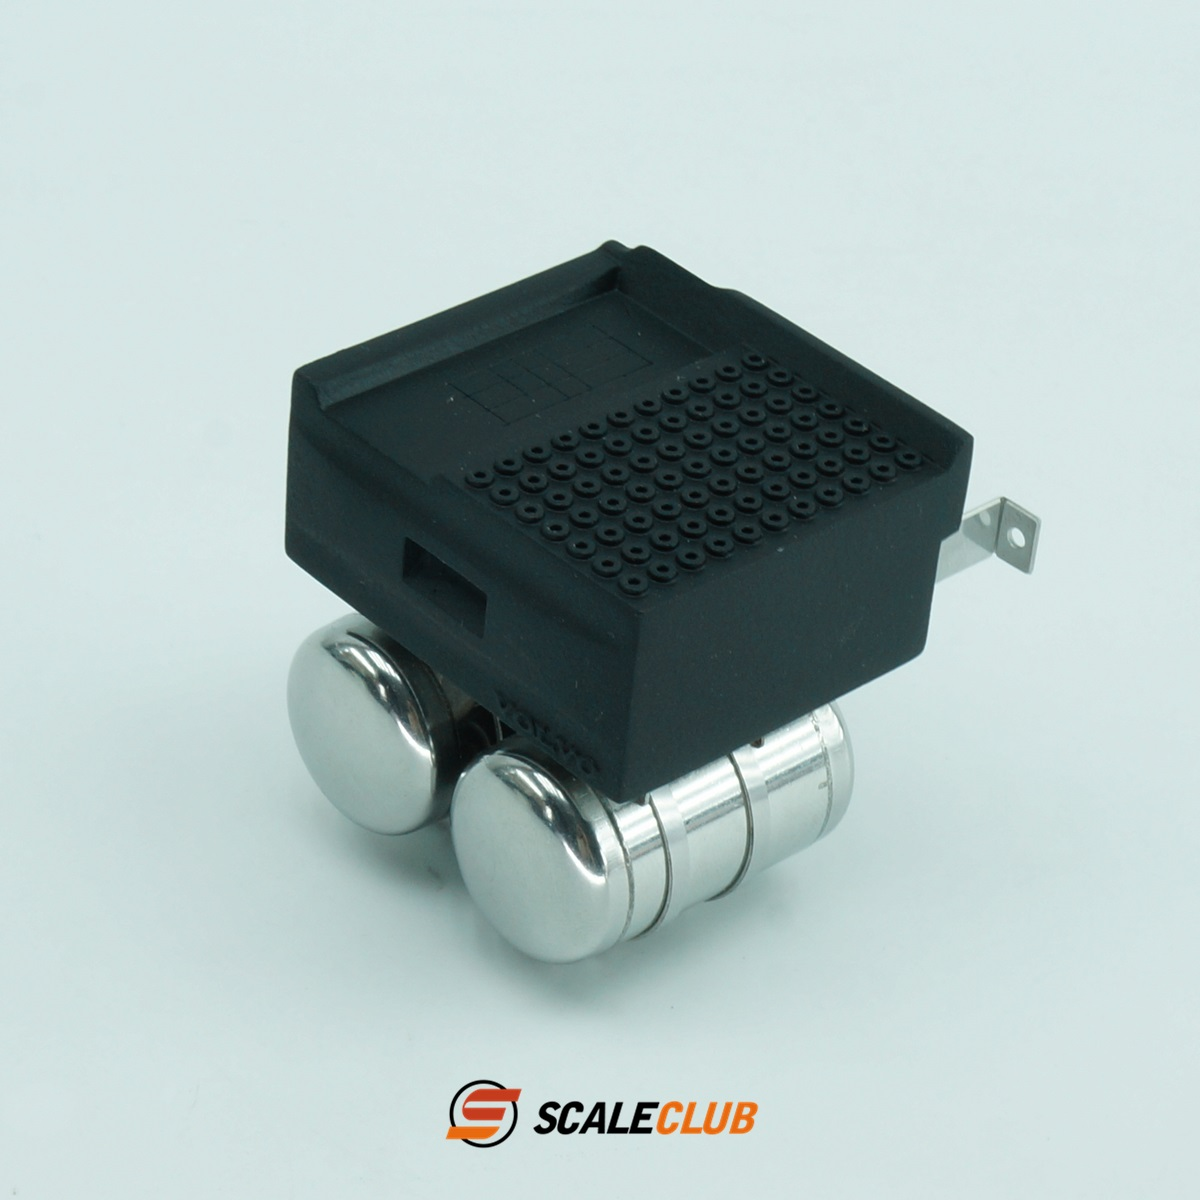 SCALECLUB  VOLVO FHFMX  Battery Box Gas Tank